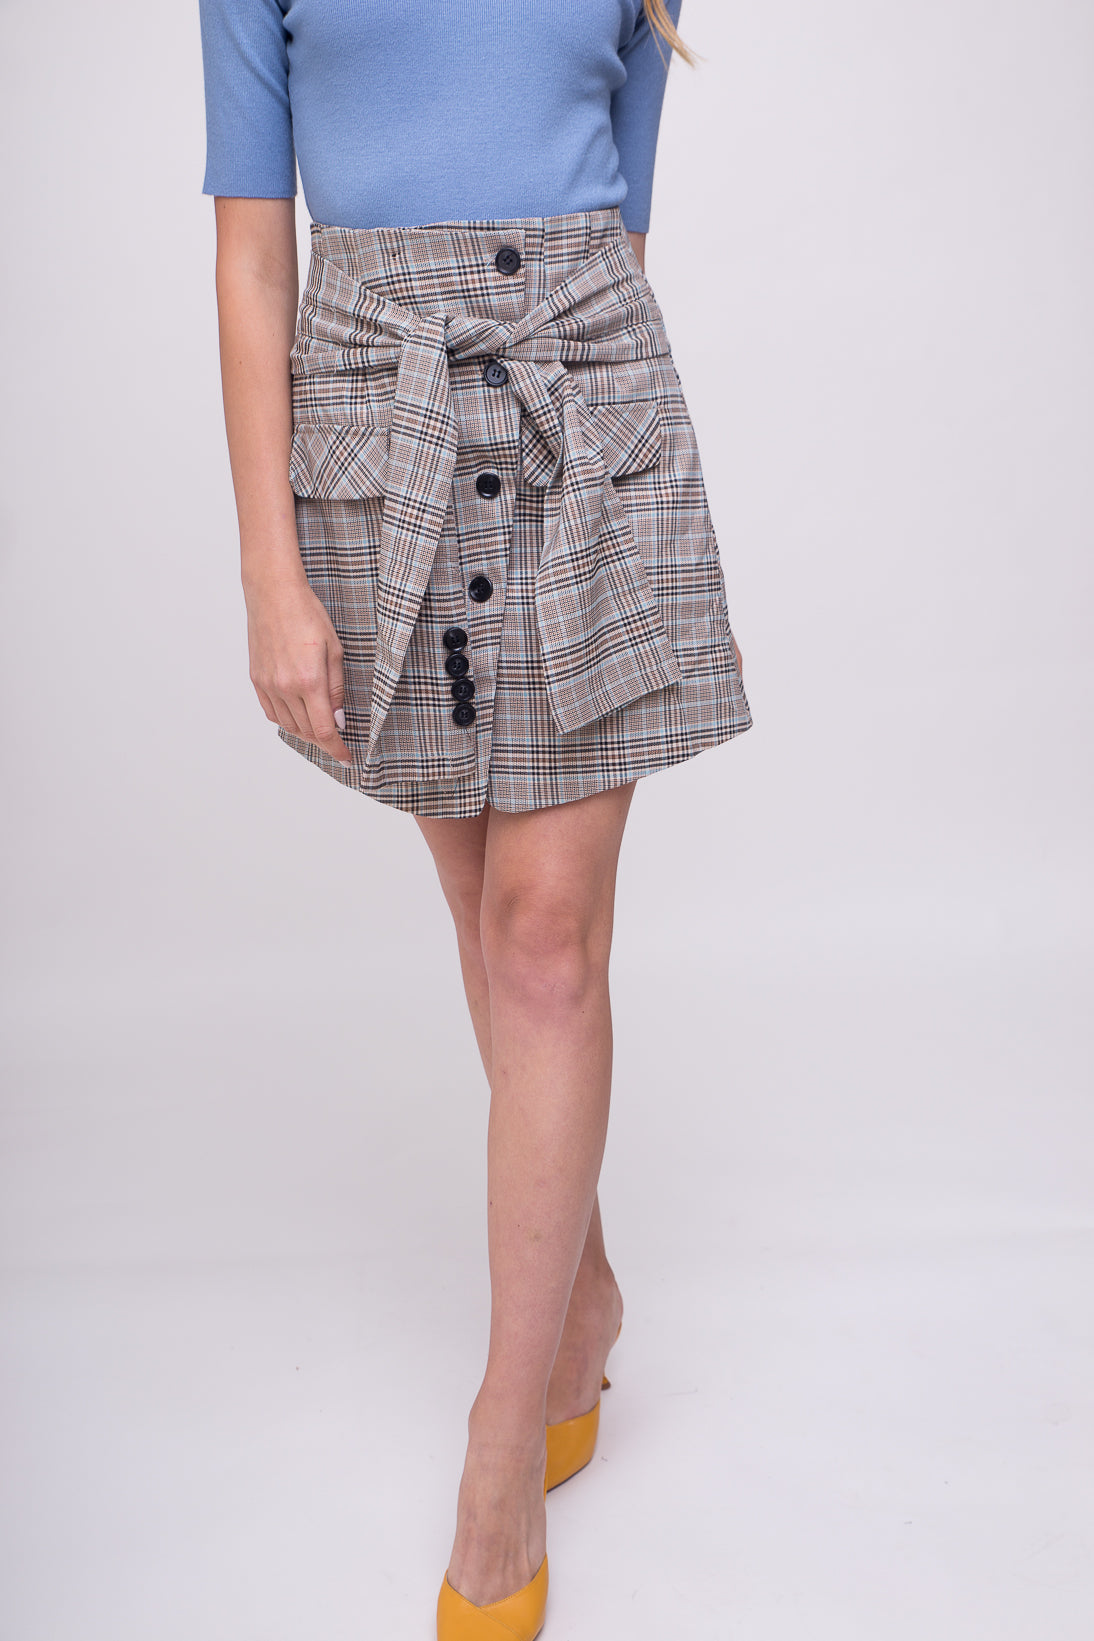 Smart, elegant, casual plaid mini skirt.